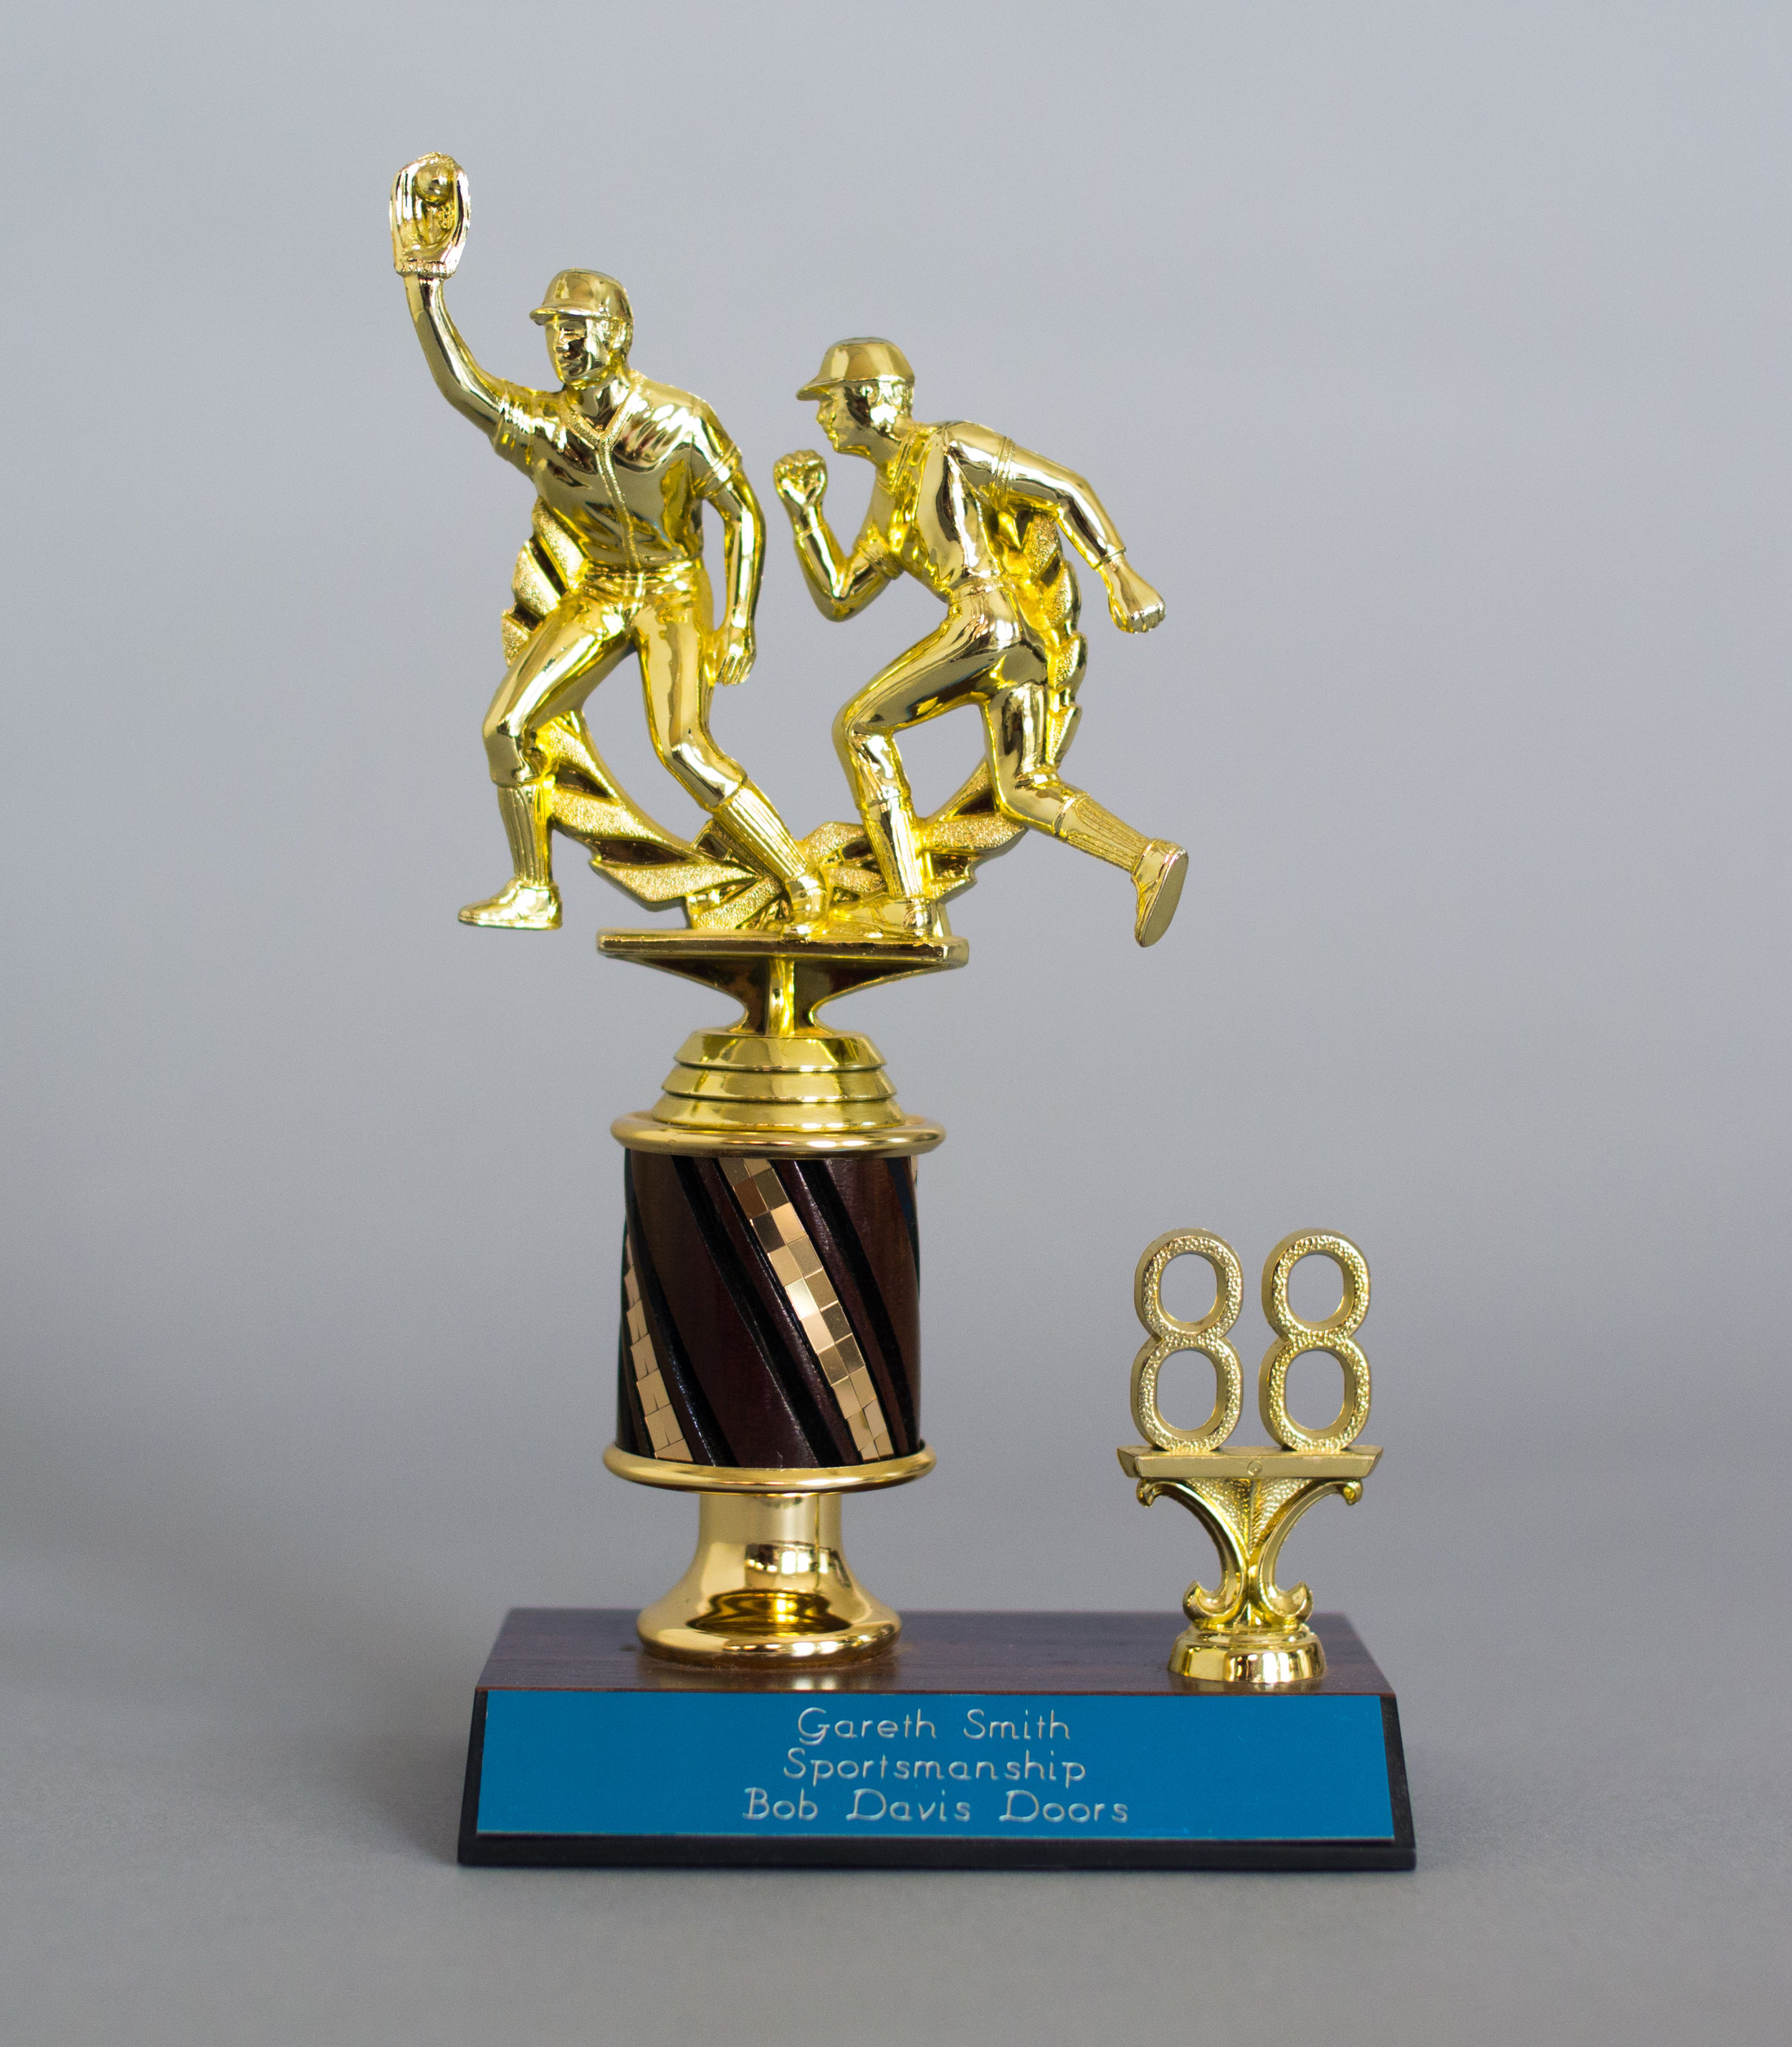 Sportsmanship Award  (AKA The You-Might-Want-to-Try-Something-Other-Than-Baseball Award) – Gareth Smith – 1988